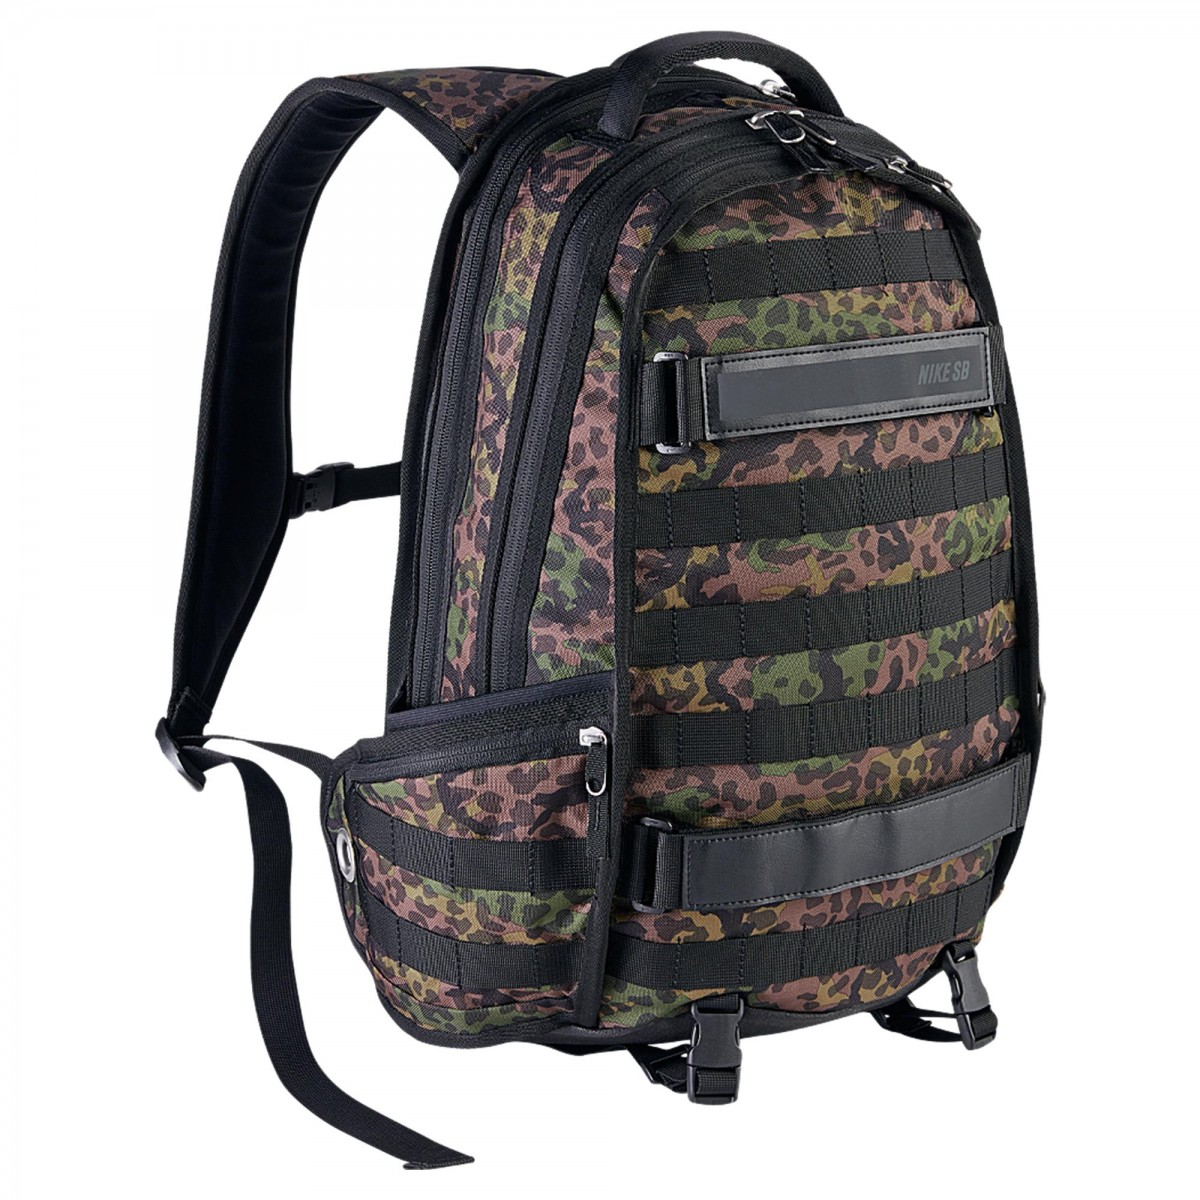 00f0060434746 Mochila Nike Sb Rpm Graphic